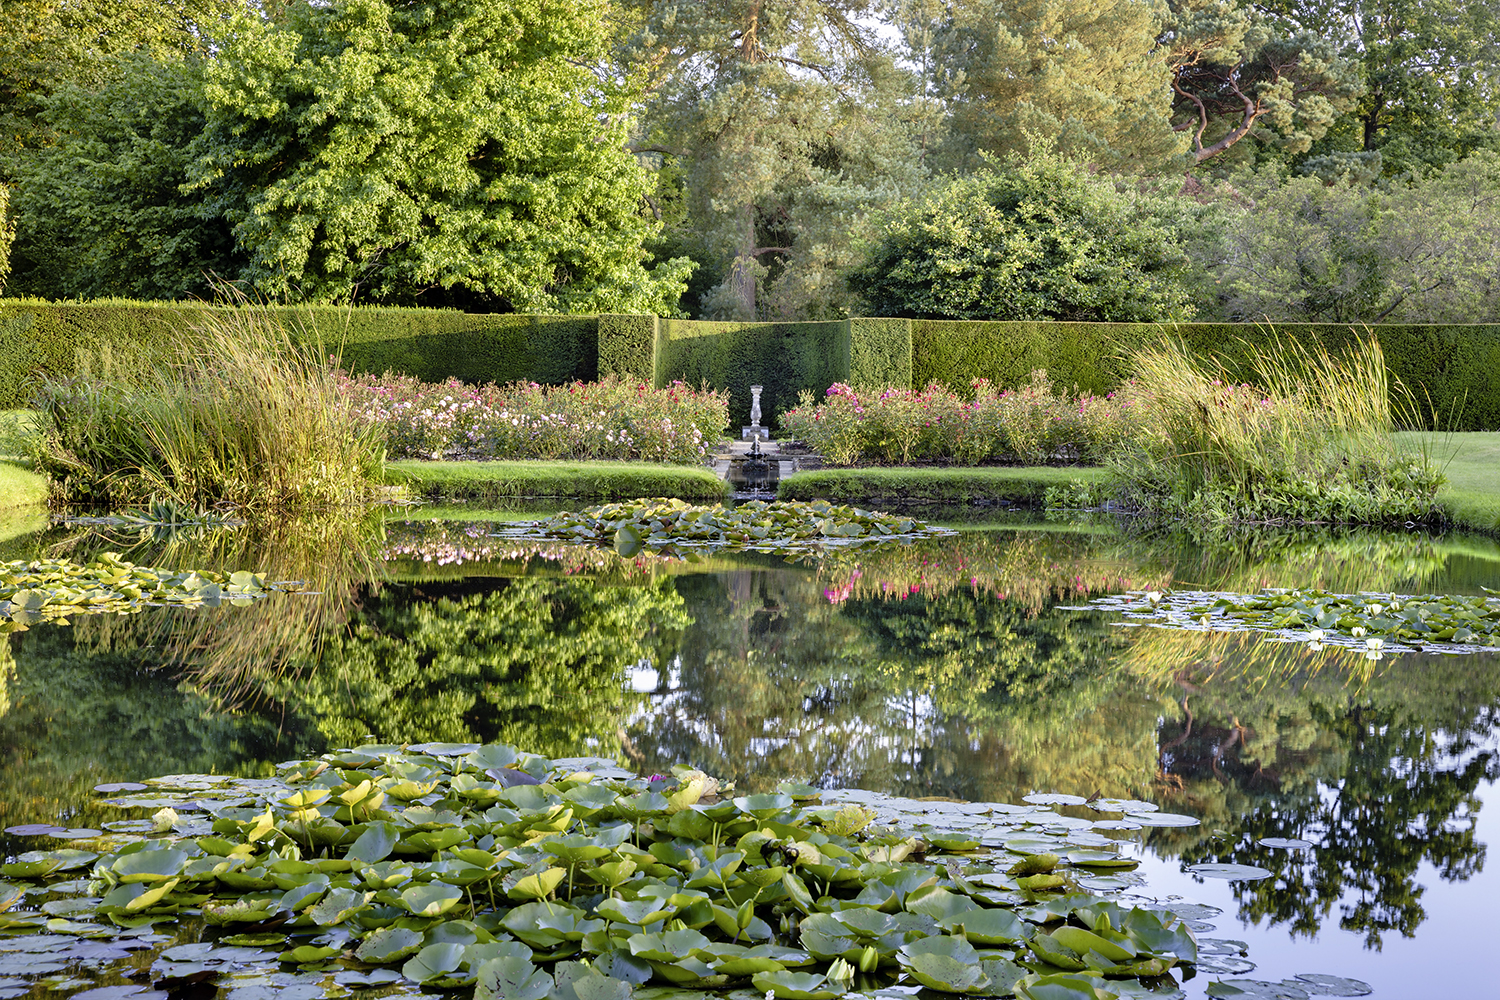 The lily pond at Bateman's c. NTPL/ANDREW BUTLER